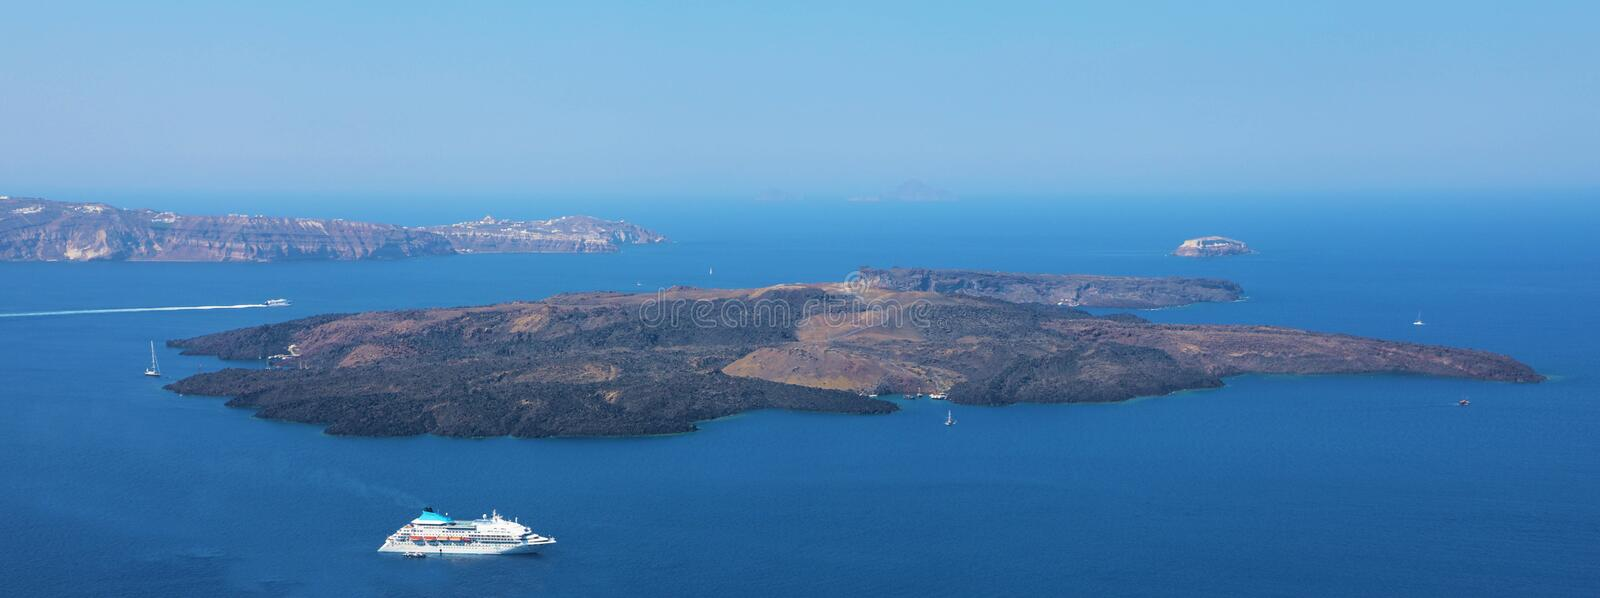 Amazing panoramic banner view from Santorini Island with the caldera of volcano and cruise ships in the Mediterranean sea, Greece stock photos